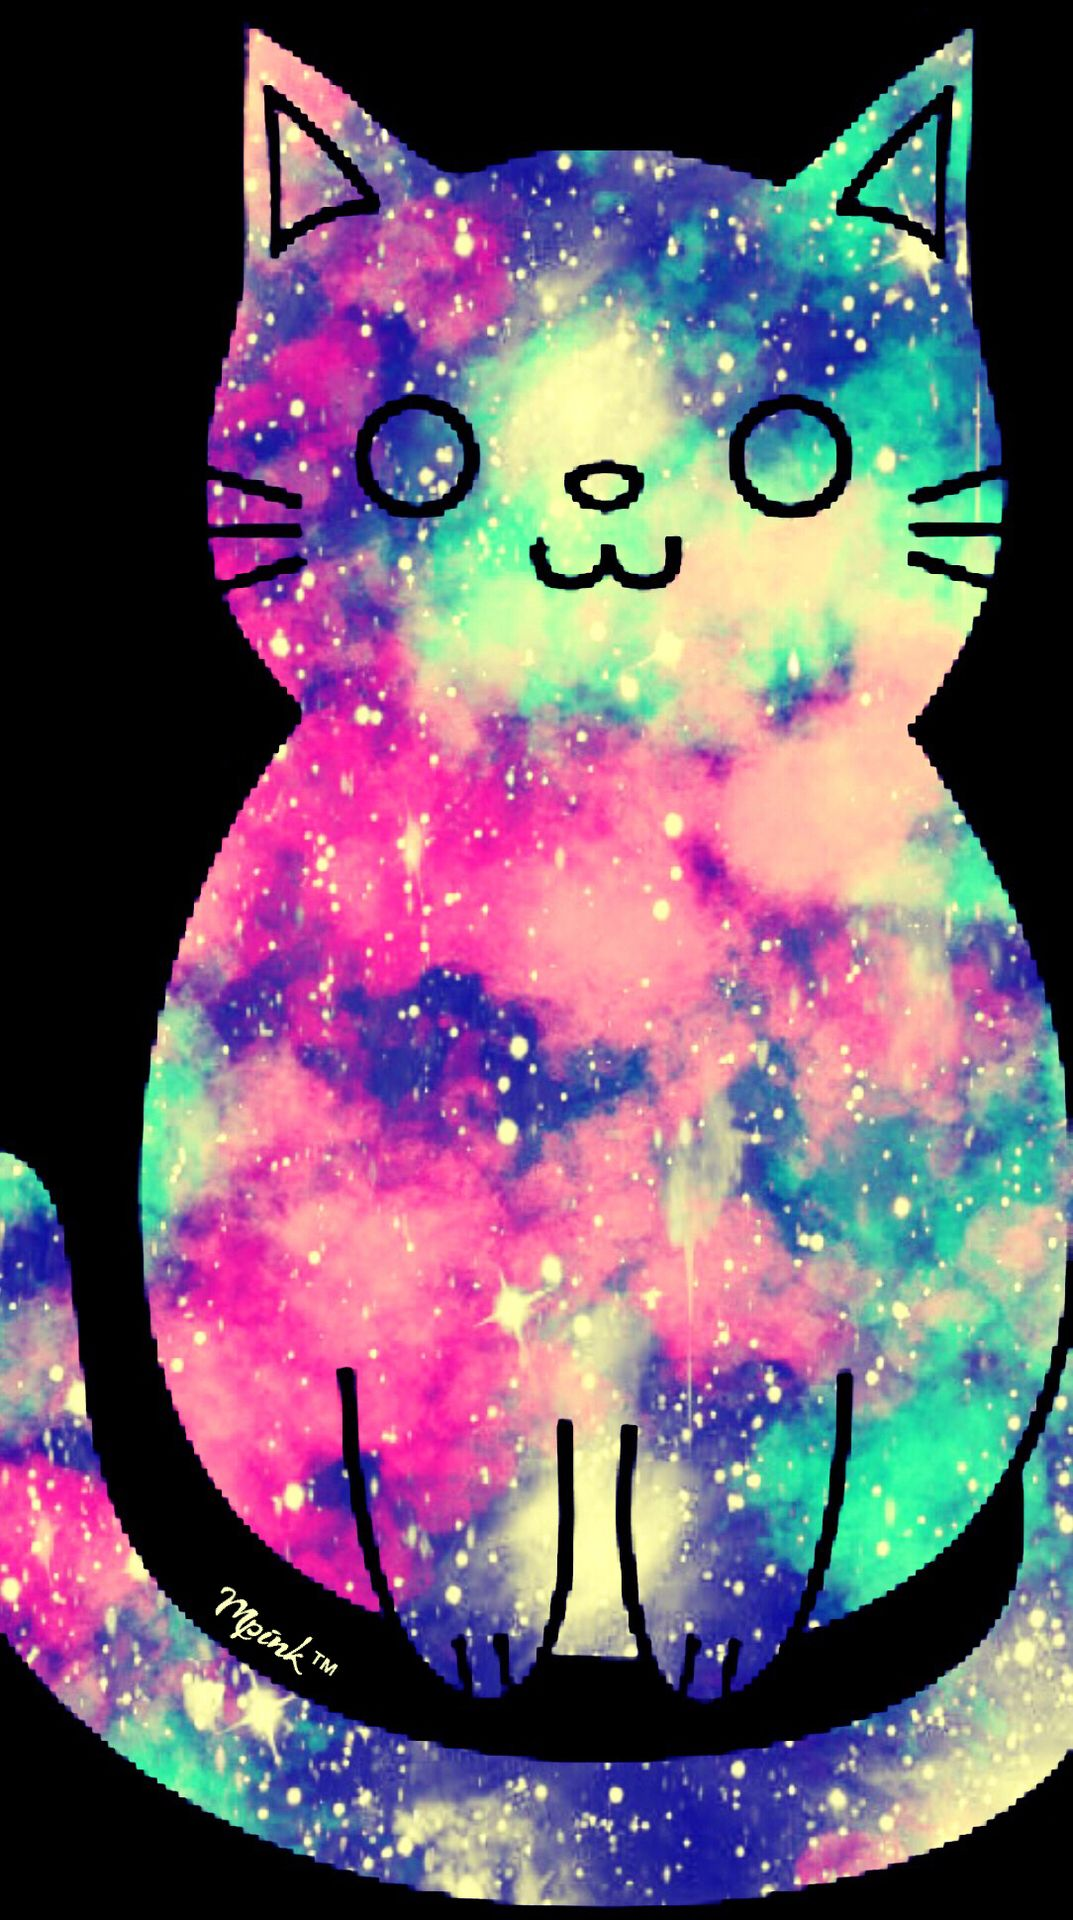 Cute Cat Galaxy Iphone Android Wallpaper I Created For The App Top Chart Wallpaper Iphone Cute Galaxy Wallpaper Glitter Wallpaper